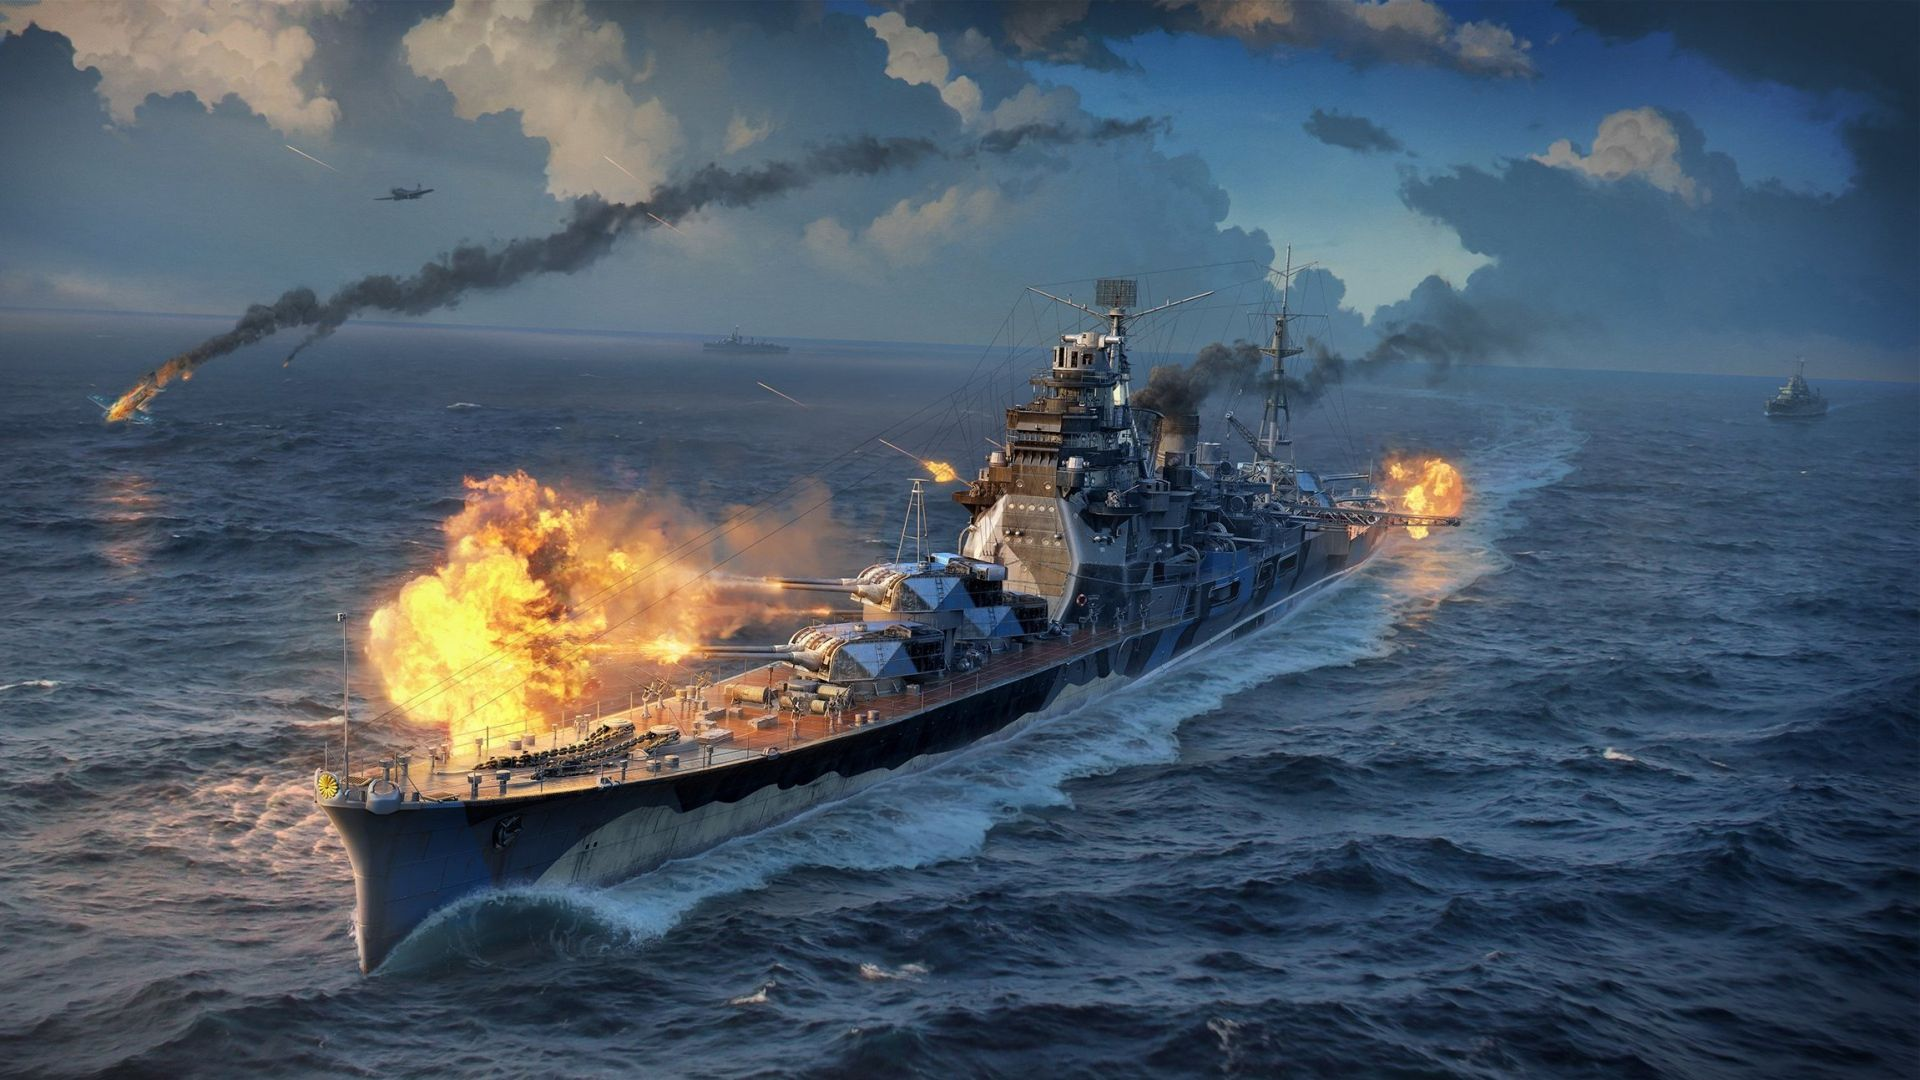 1920x1080 Wallpaper World Of Warships Wargaming Net Wows